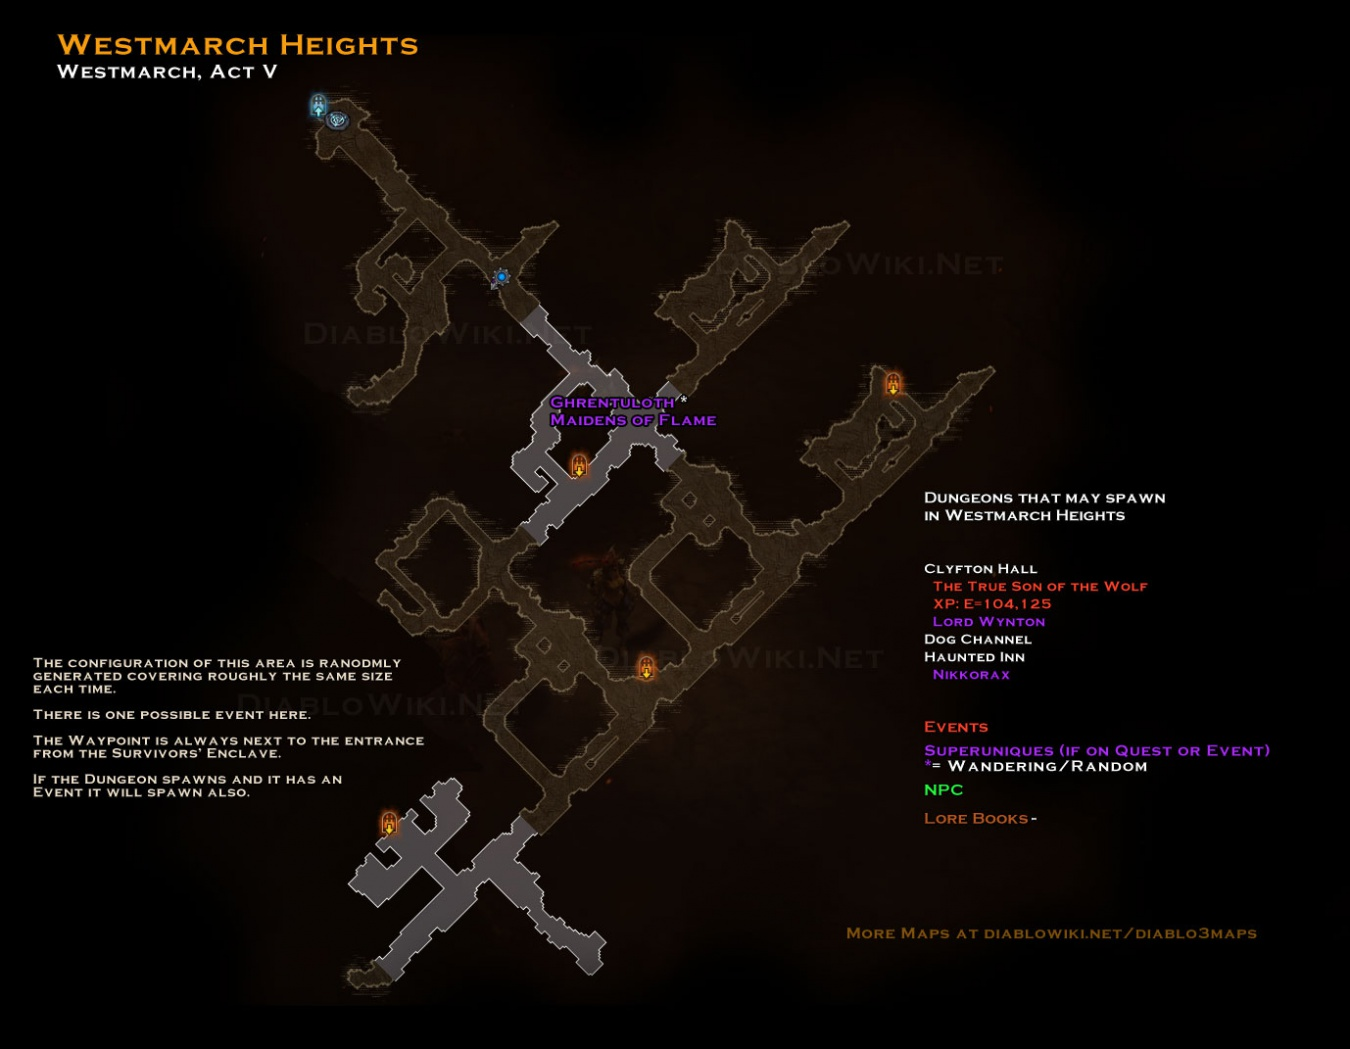 Westmarch-heights-map.jpg